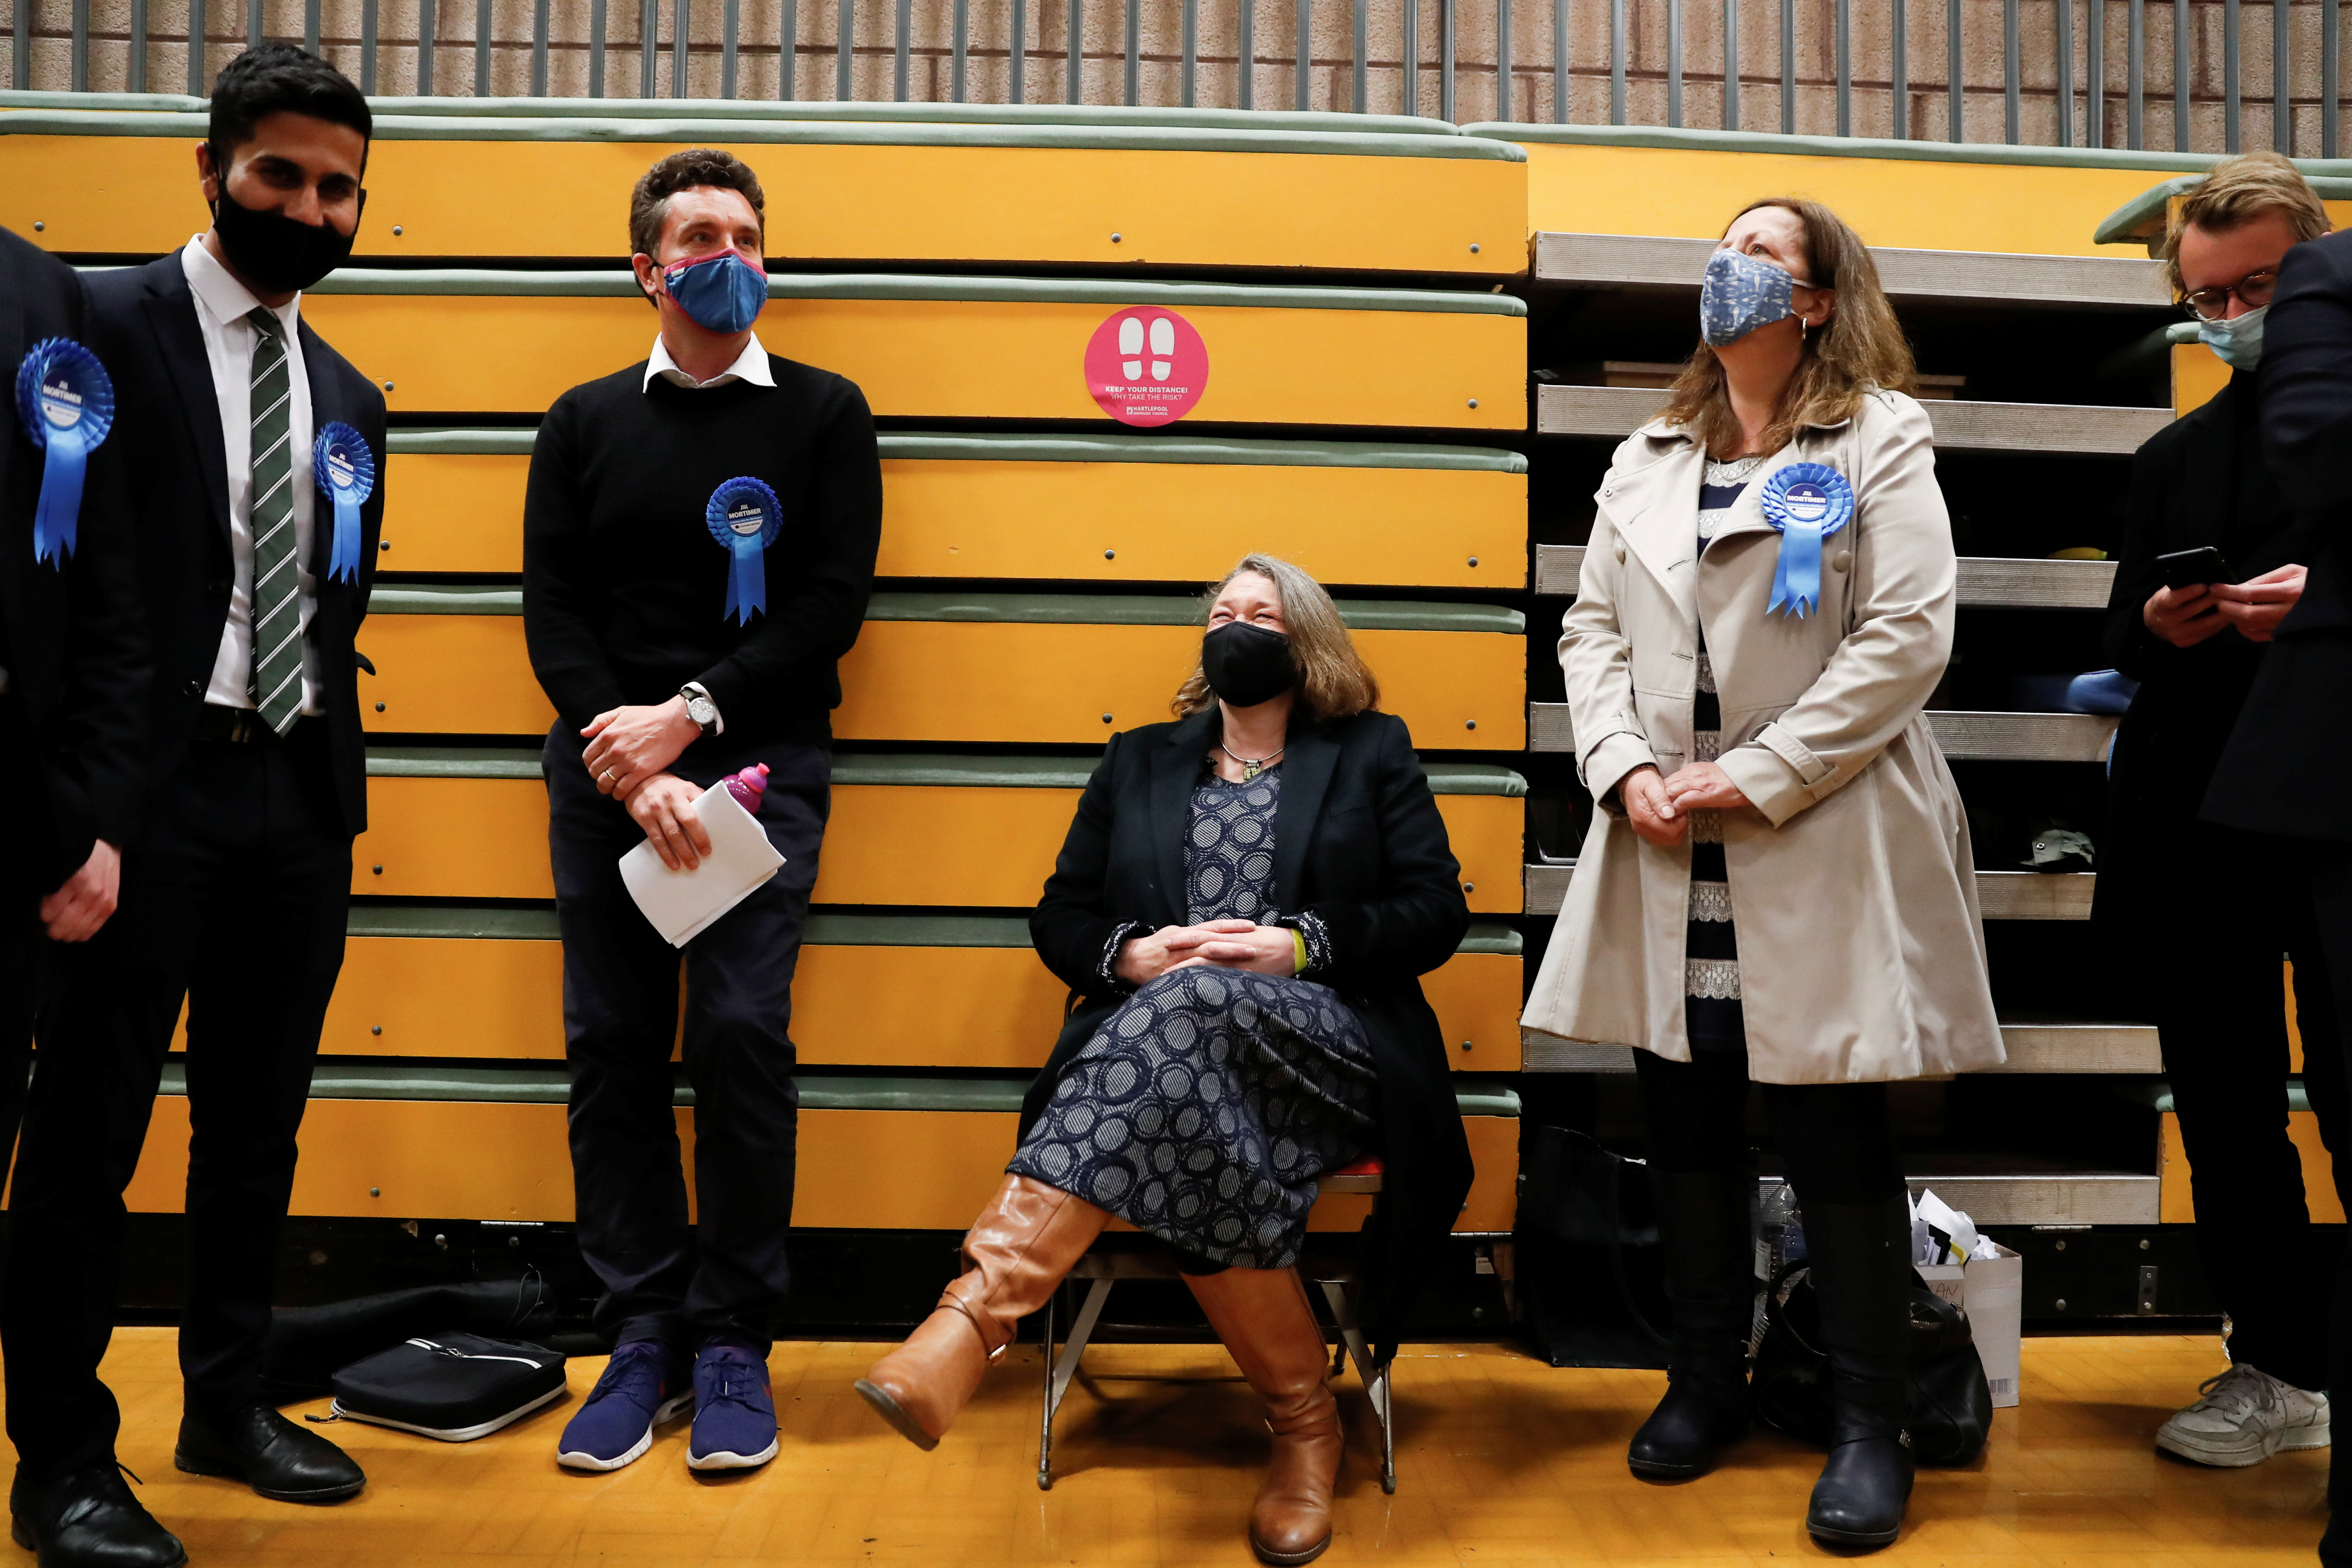 Jill Mortimer (C) of Conservative Party waits at Mill House Leisure Centre as ballots are being counted, in Hartlepool, Britain May 7, 2021. REUTERS/Lee Smith